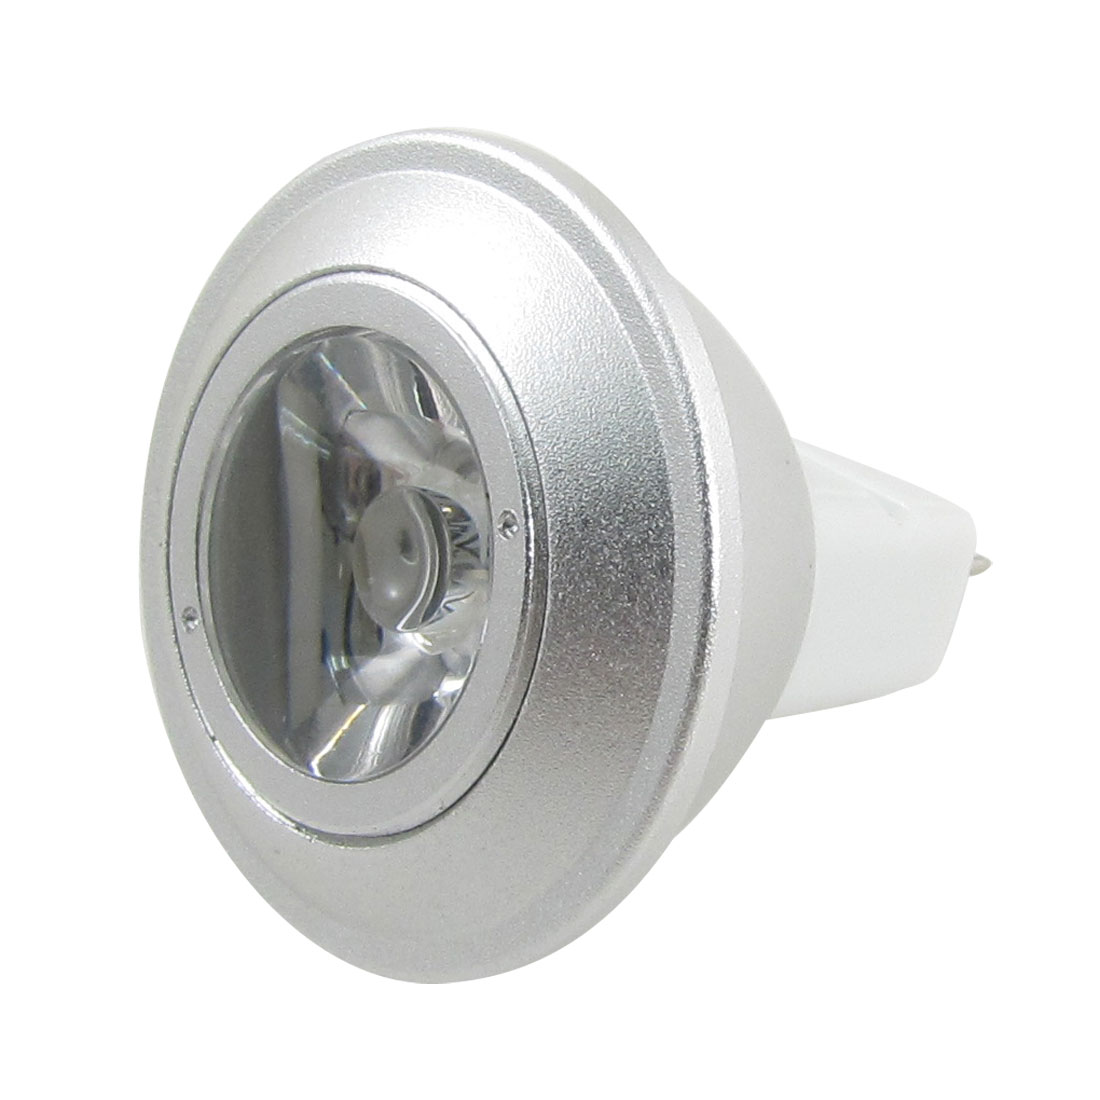 3000K 1W MR11 Warm White LED Spotlight Light Lamp